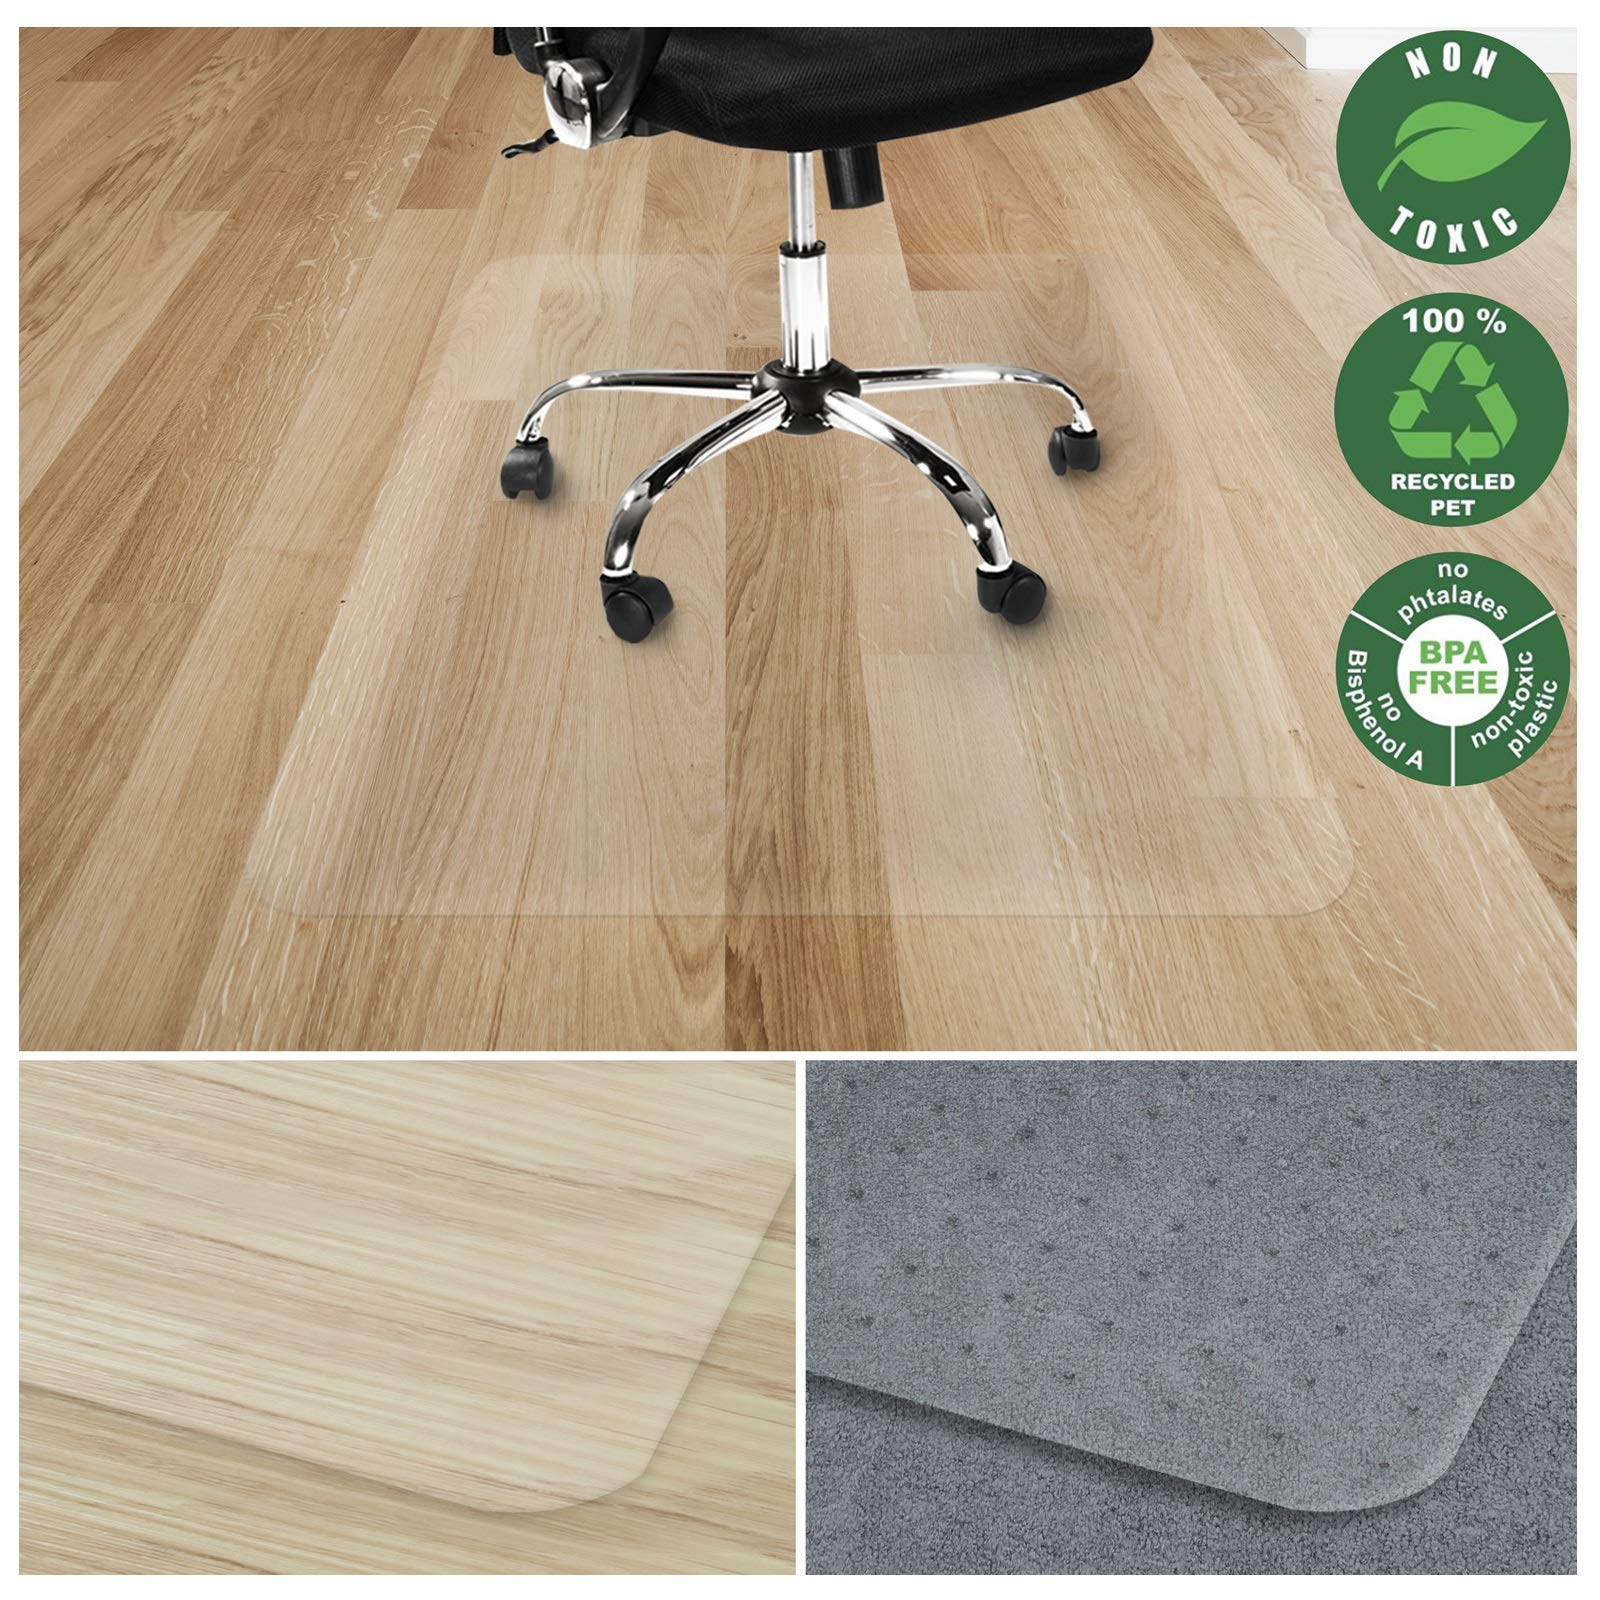 Office Marshal Chair Mat for Hard Floors   Eco-Friendly Series Chair Floor Protector   100% Recycled (PET) Floor Mat for Office or Home Use   Multiple Sizes   Translucent - 40'' x 48'' by Office Marshal